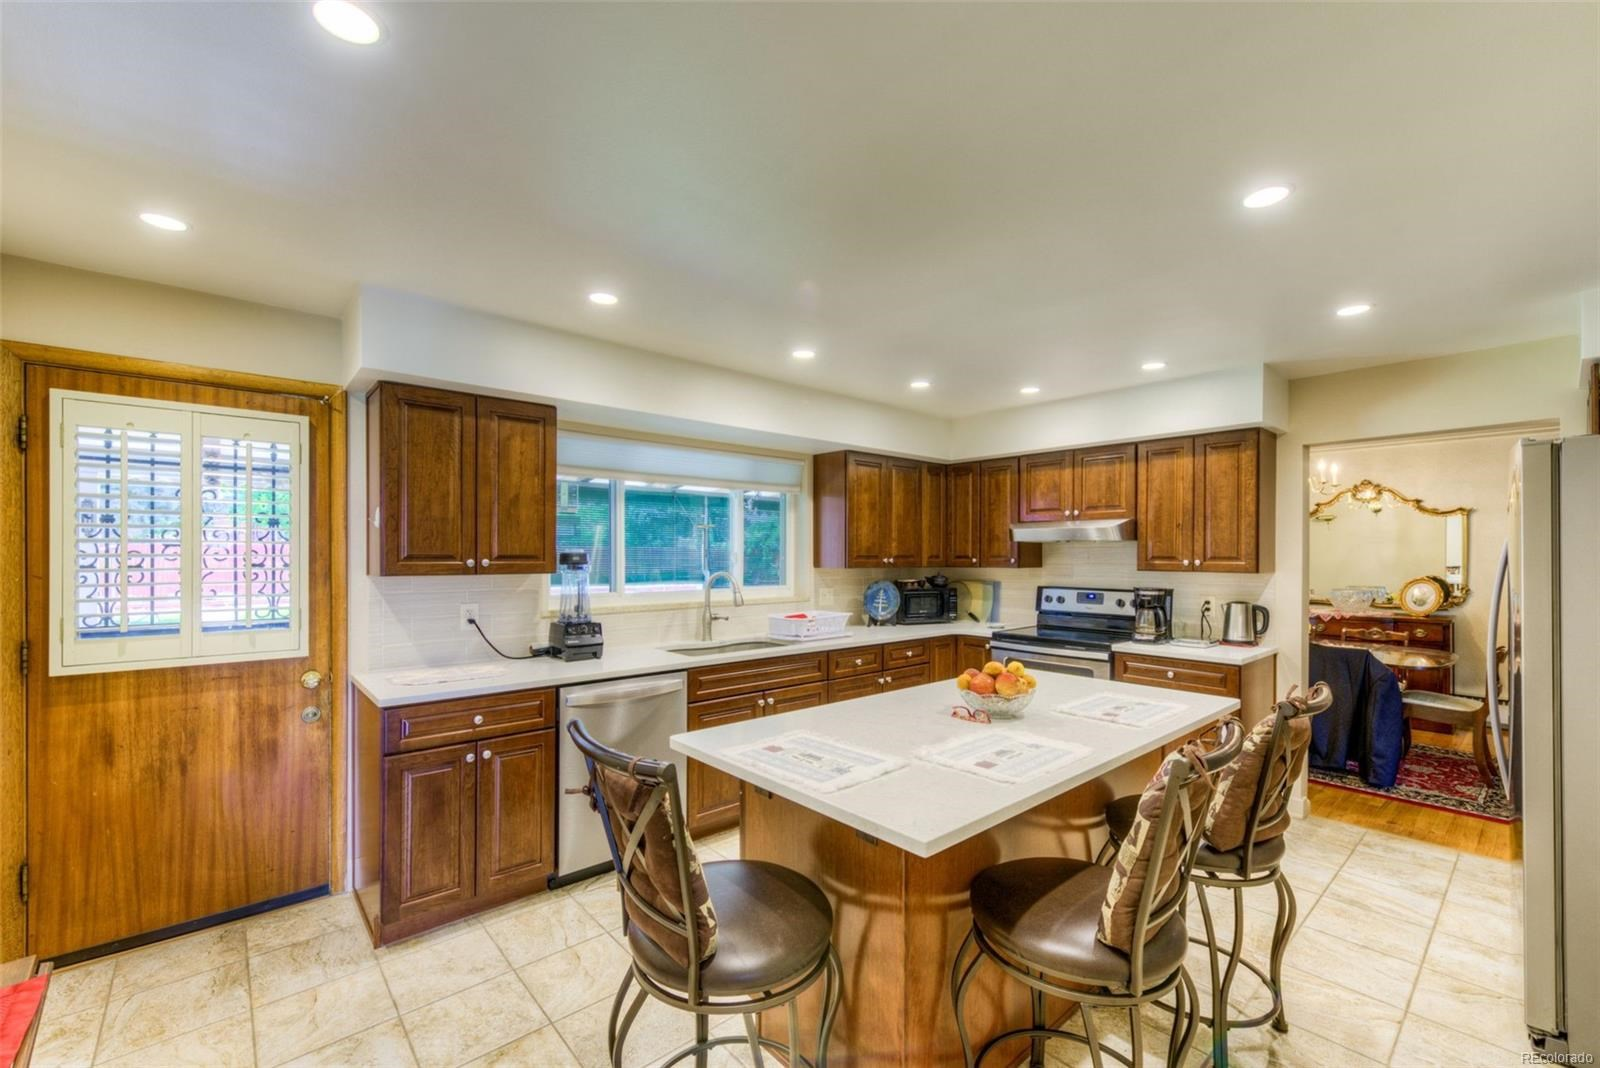 MLS# 5735873 - 9 - 45 S Brentwood Street, Lakewood, CO 80226